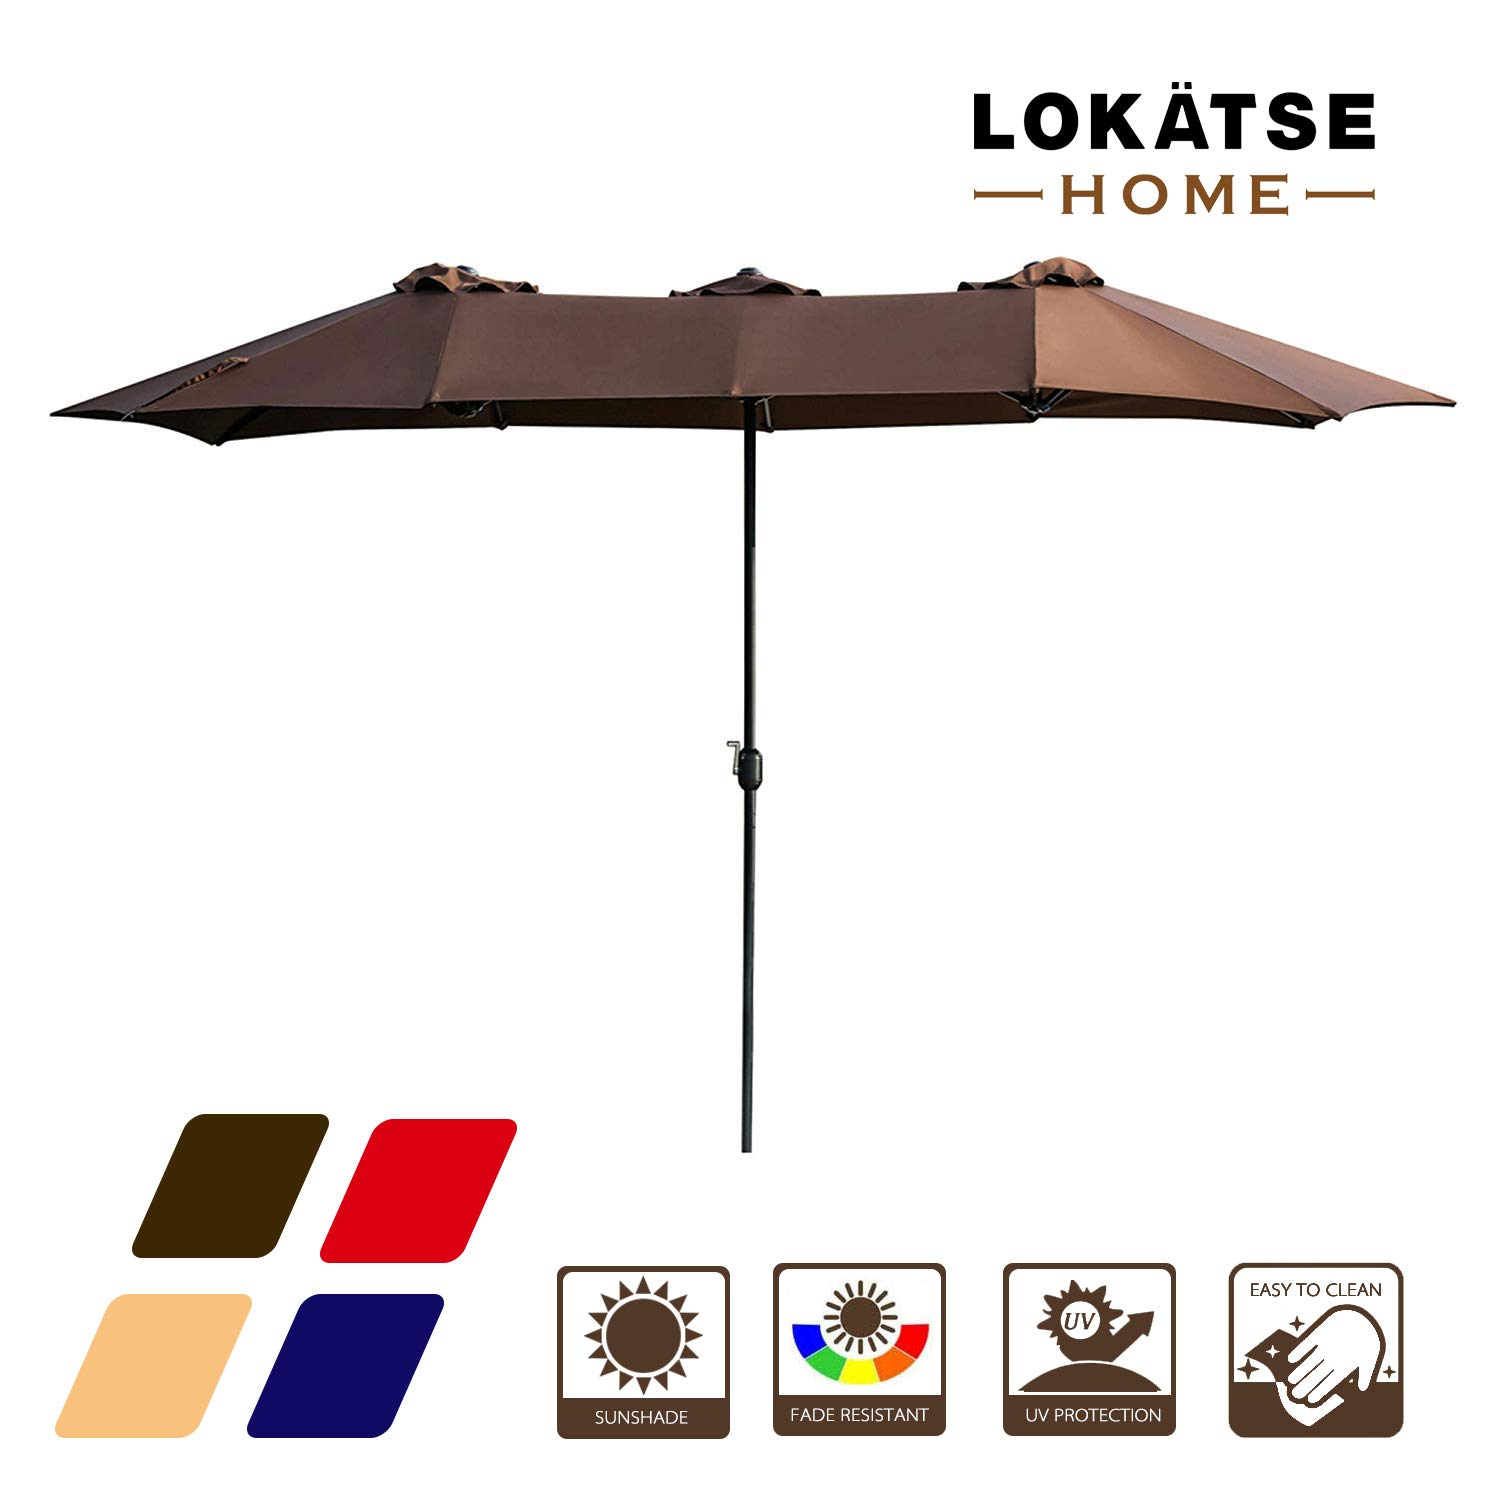 LOKATSE HOME 15 Ft Double Sided Outdoor Umbrella Rectangular Large with Crank for Patio Shade Outside Deck or Pool, Brown